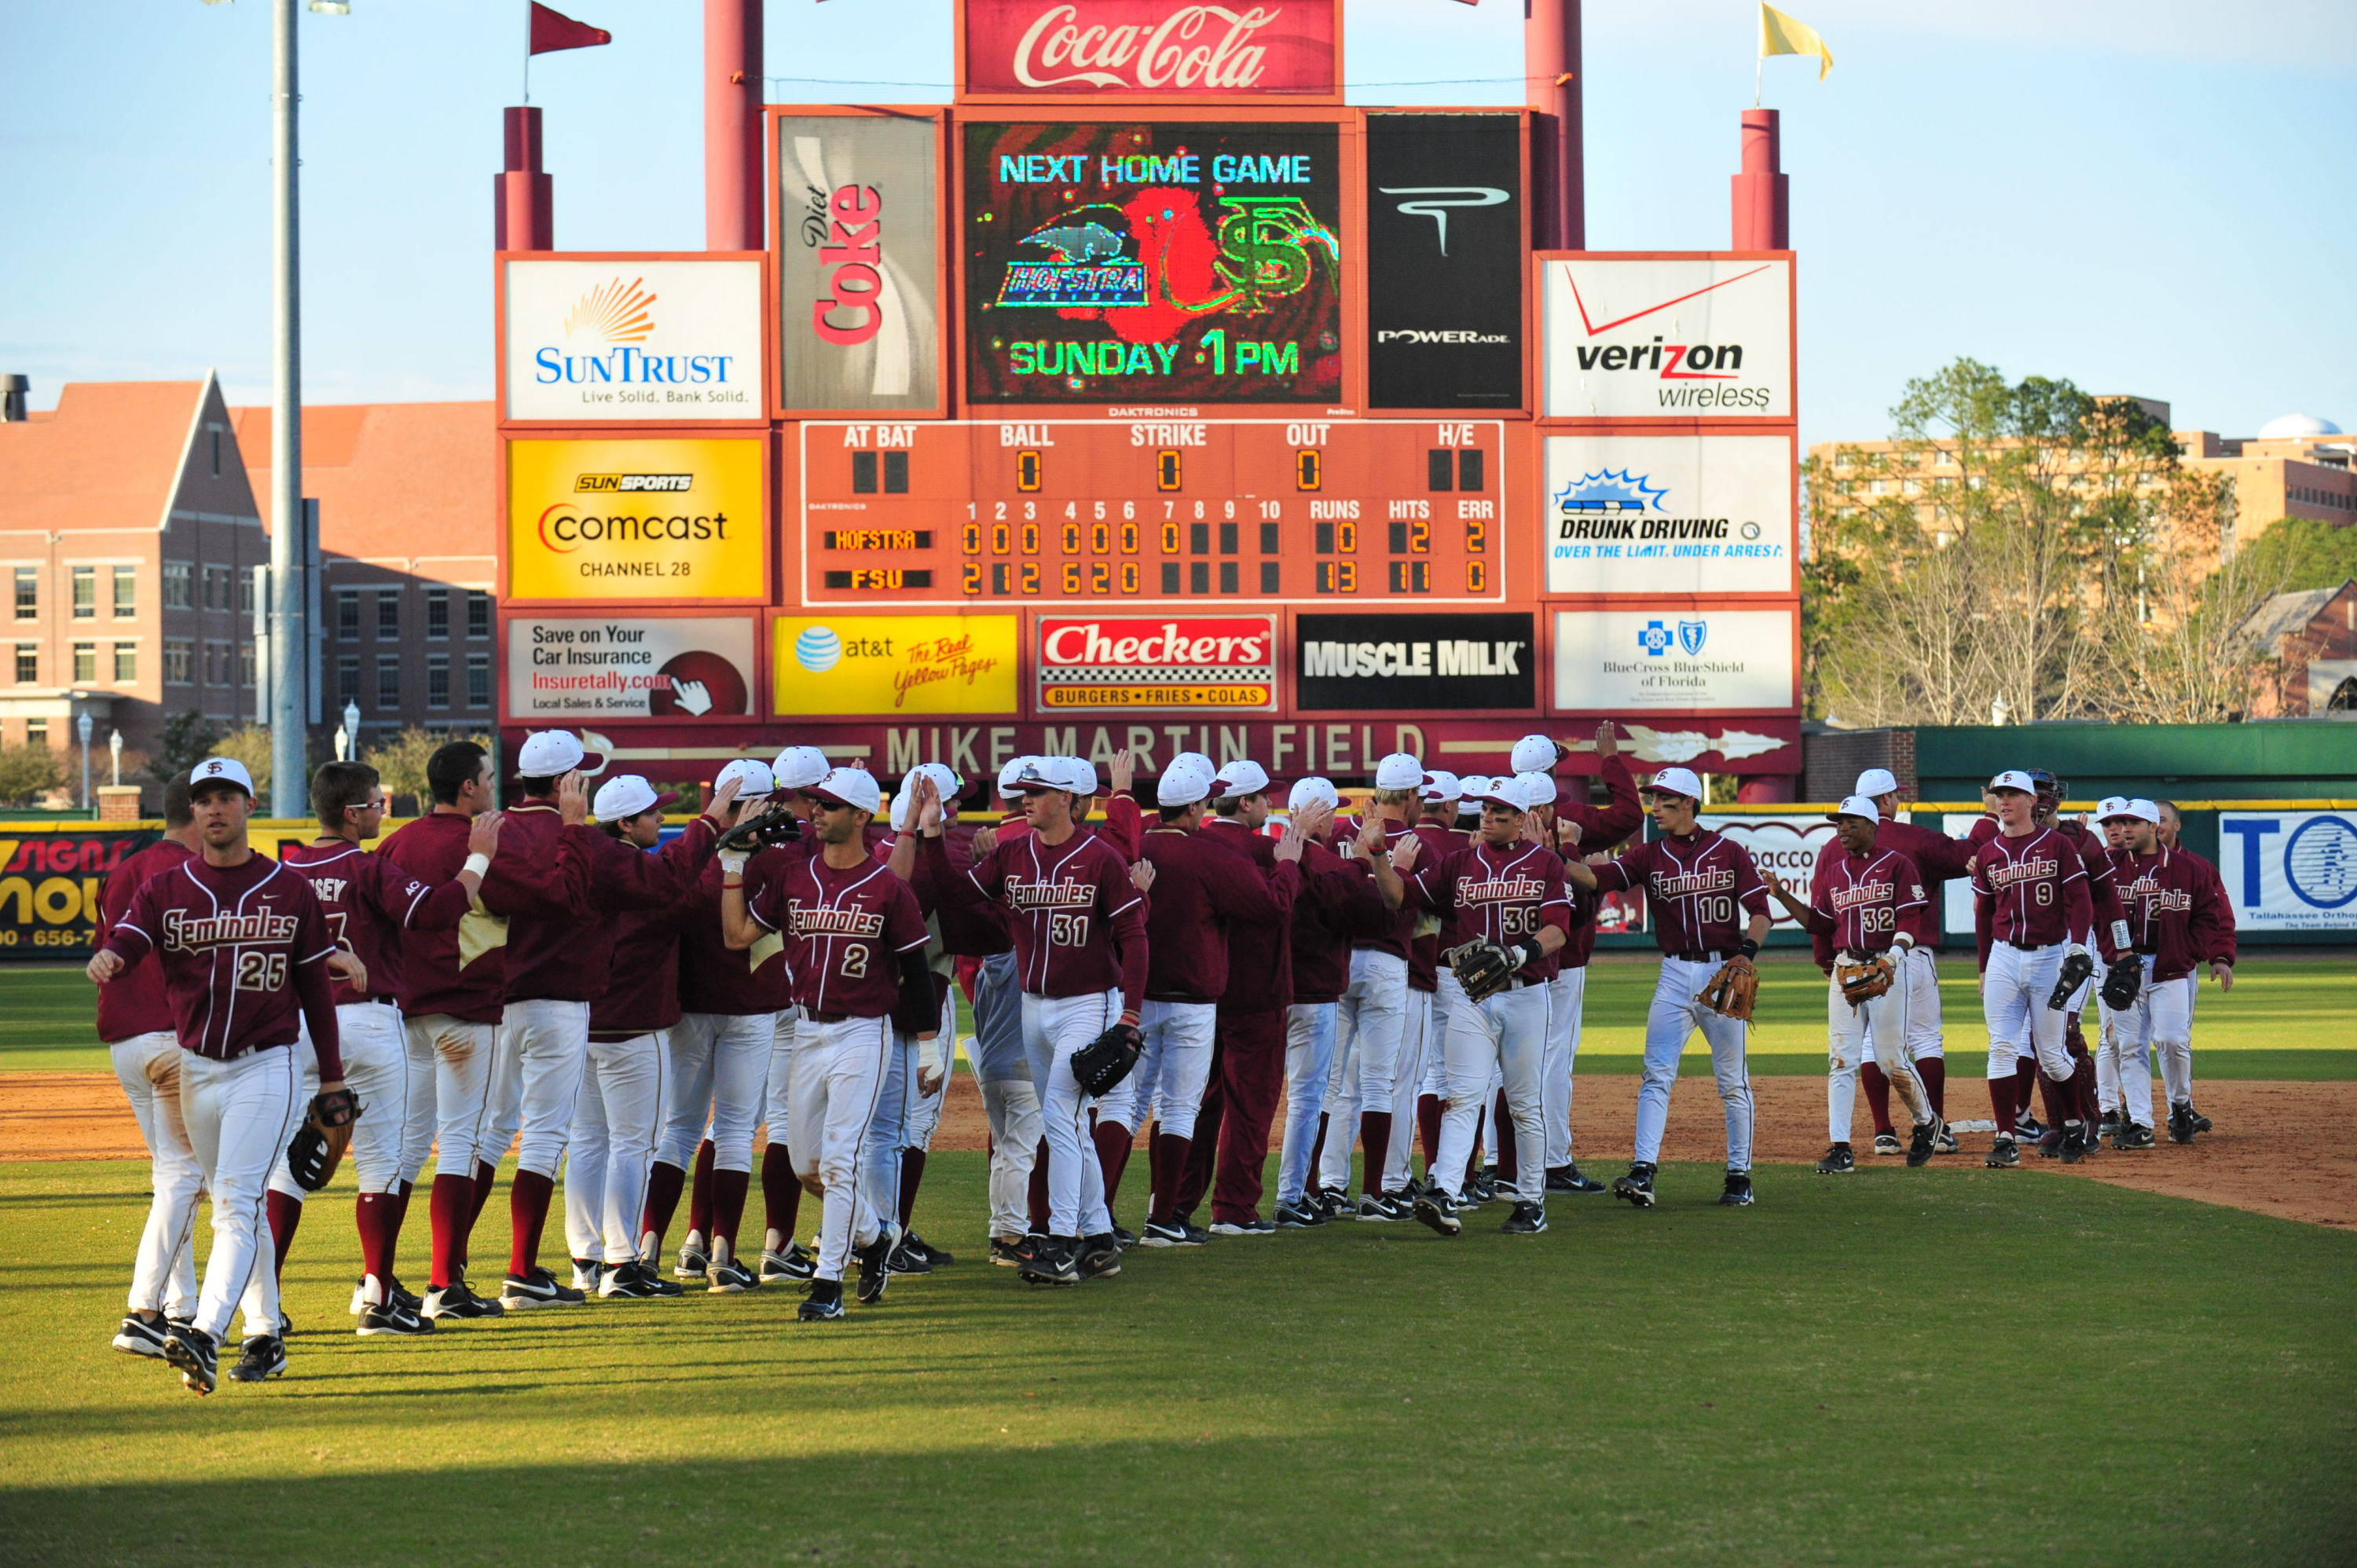 The Seminoles celebrate after taking both games of a doubleheader against the Pride.